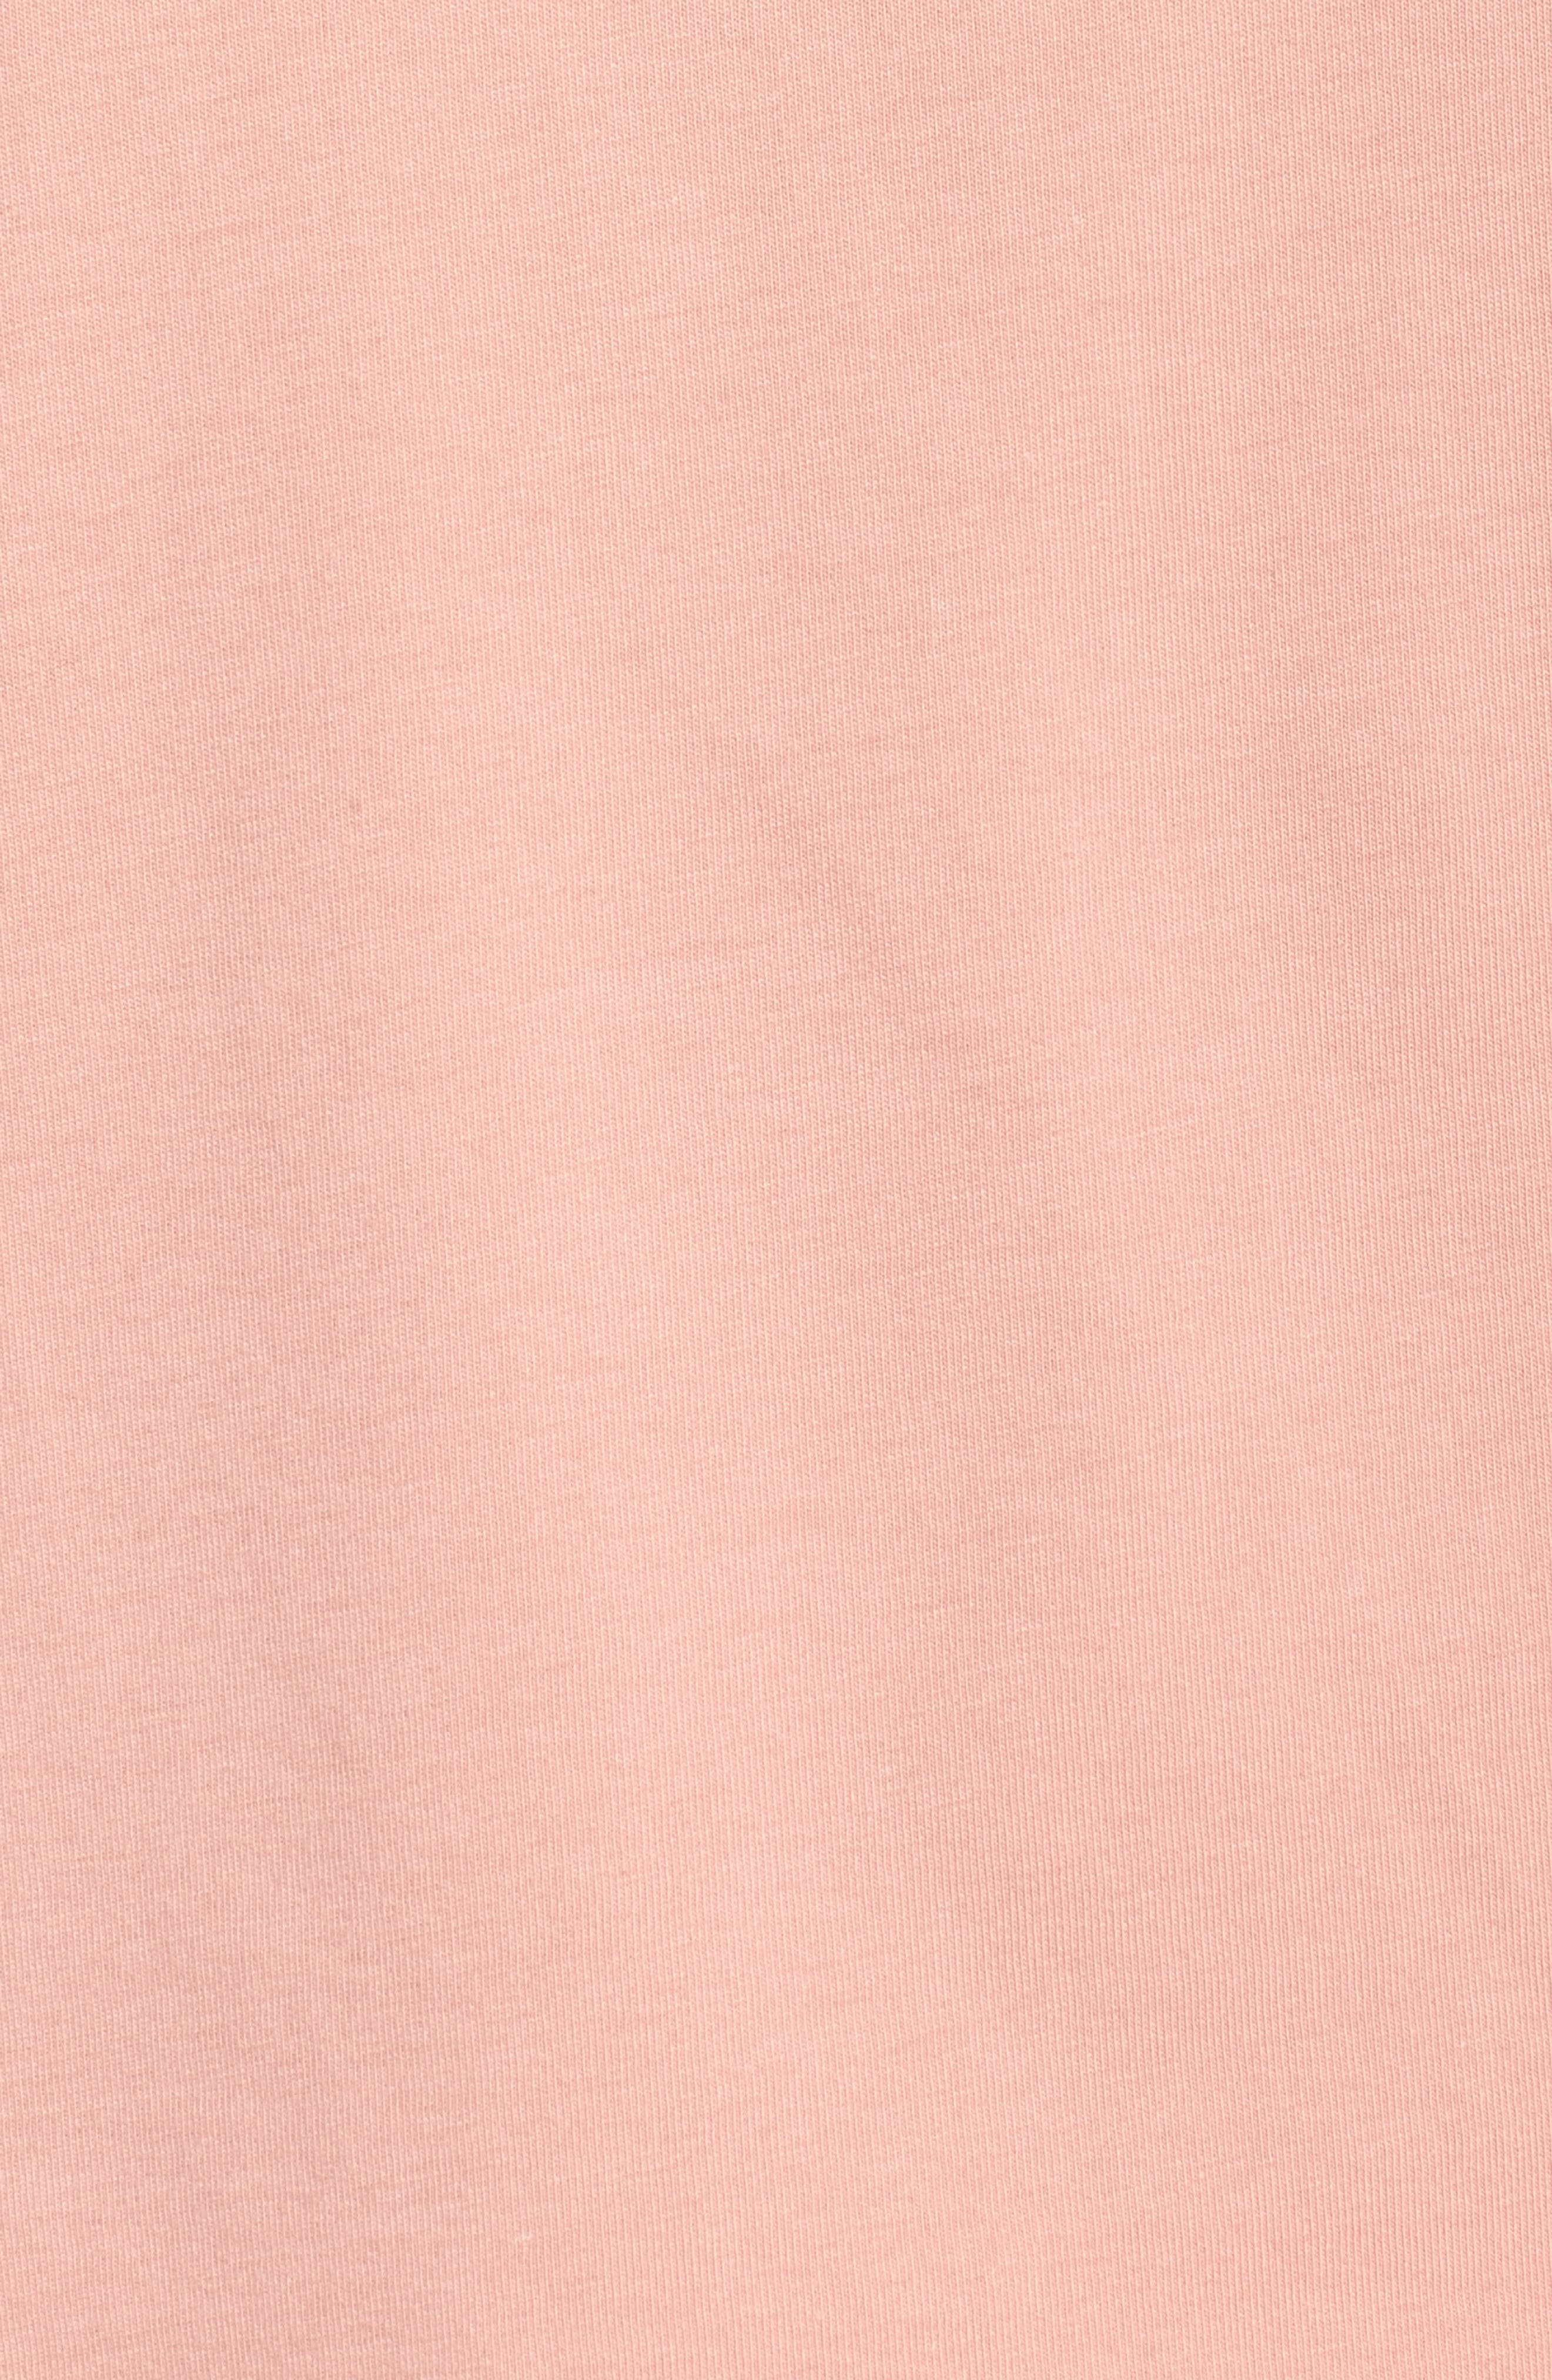 Lux Crisscross Tee,                             Alternate thumbnail 6, color,                             Cameo Brown